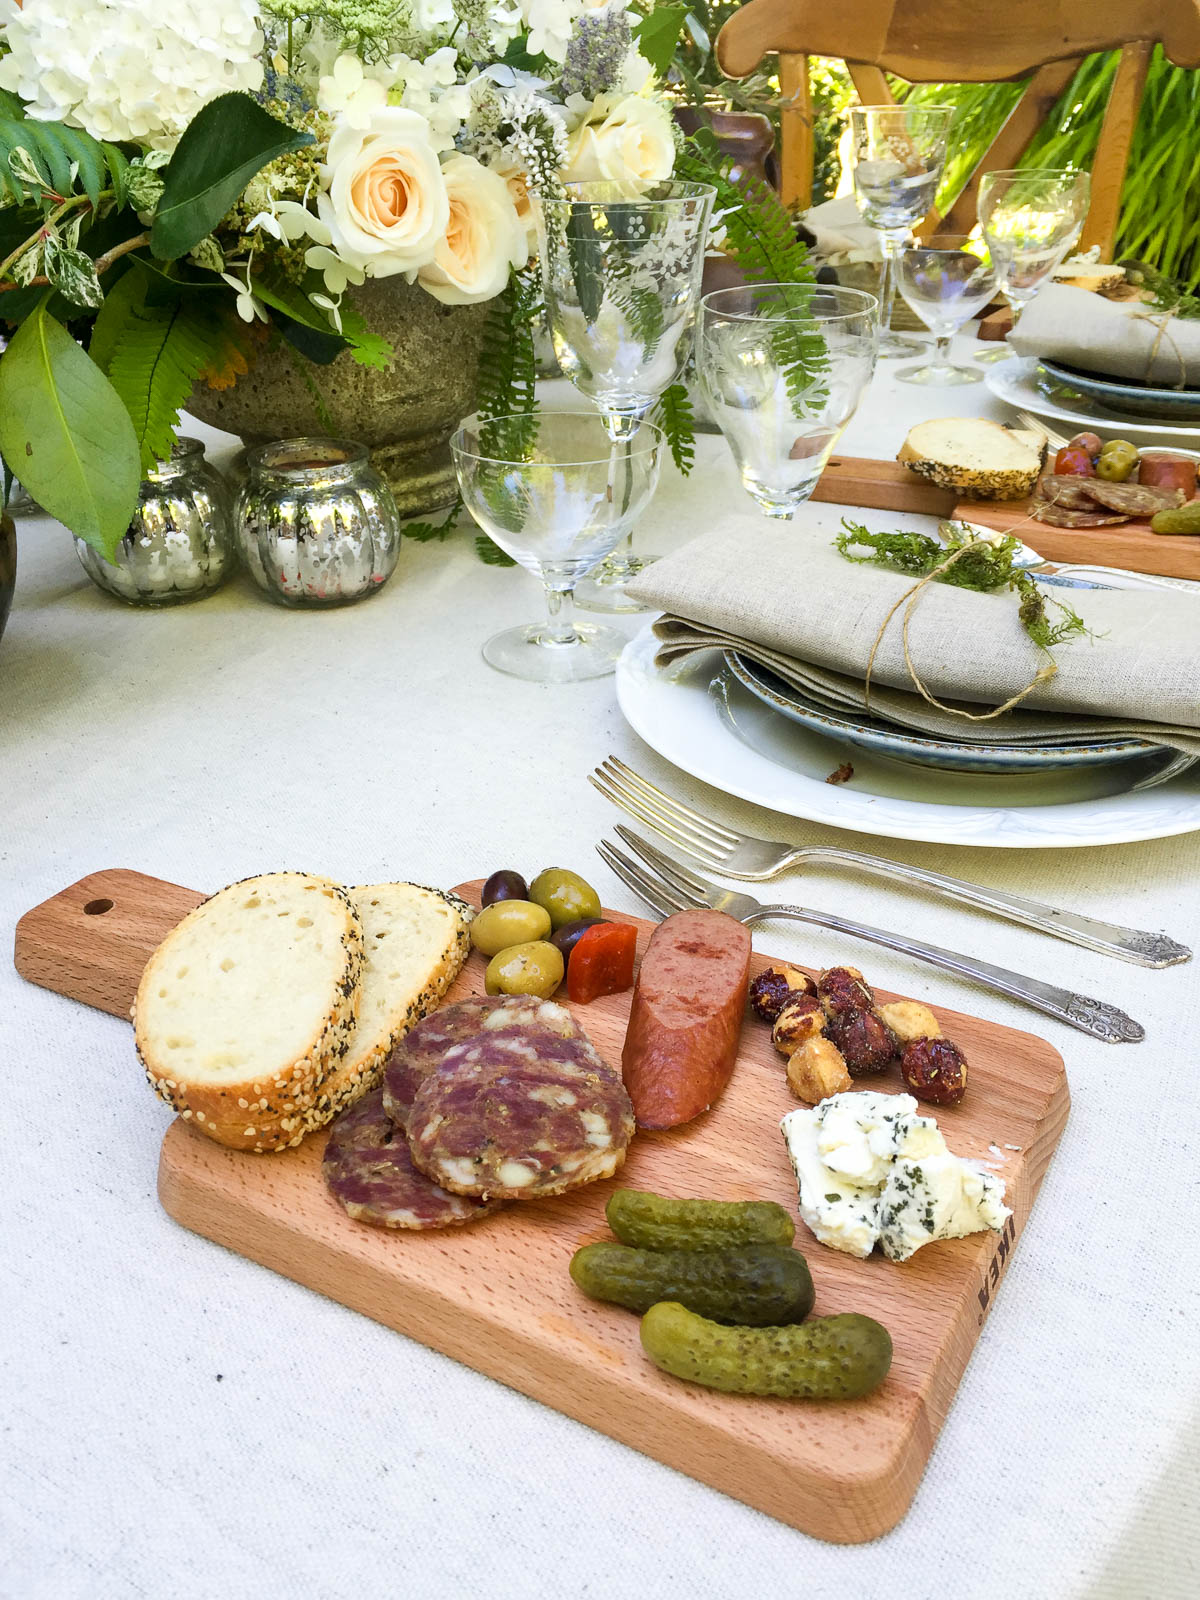 Use small cutting boards to create mini charcuterie boards or cheese plates for a casual-chic gathering.